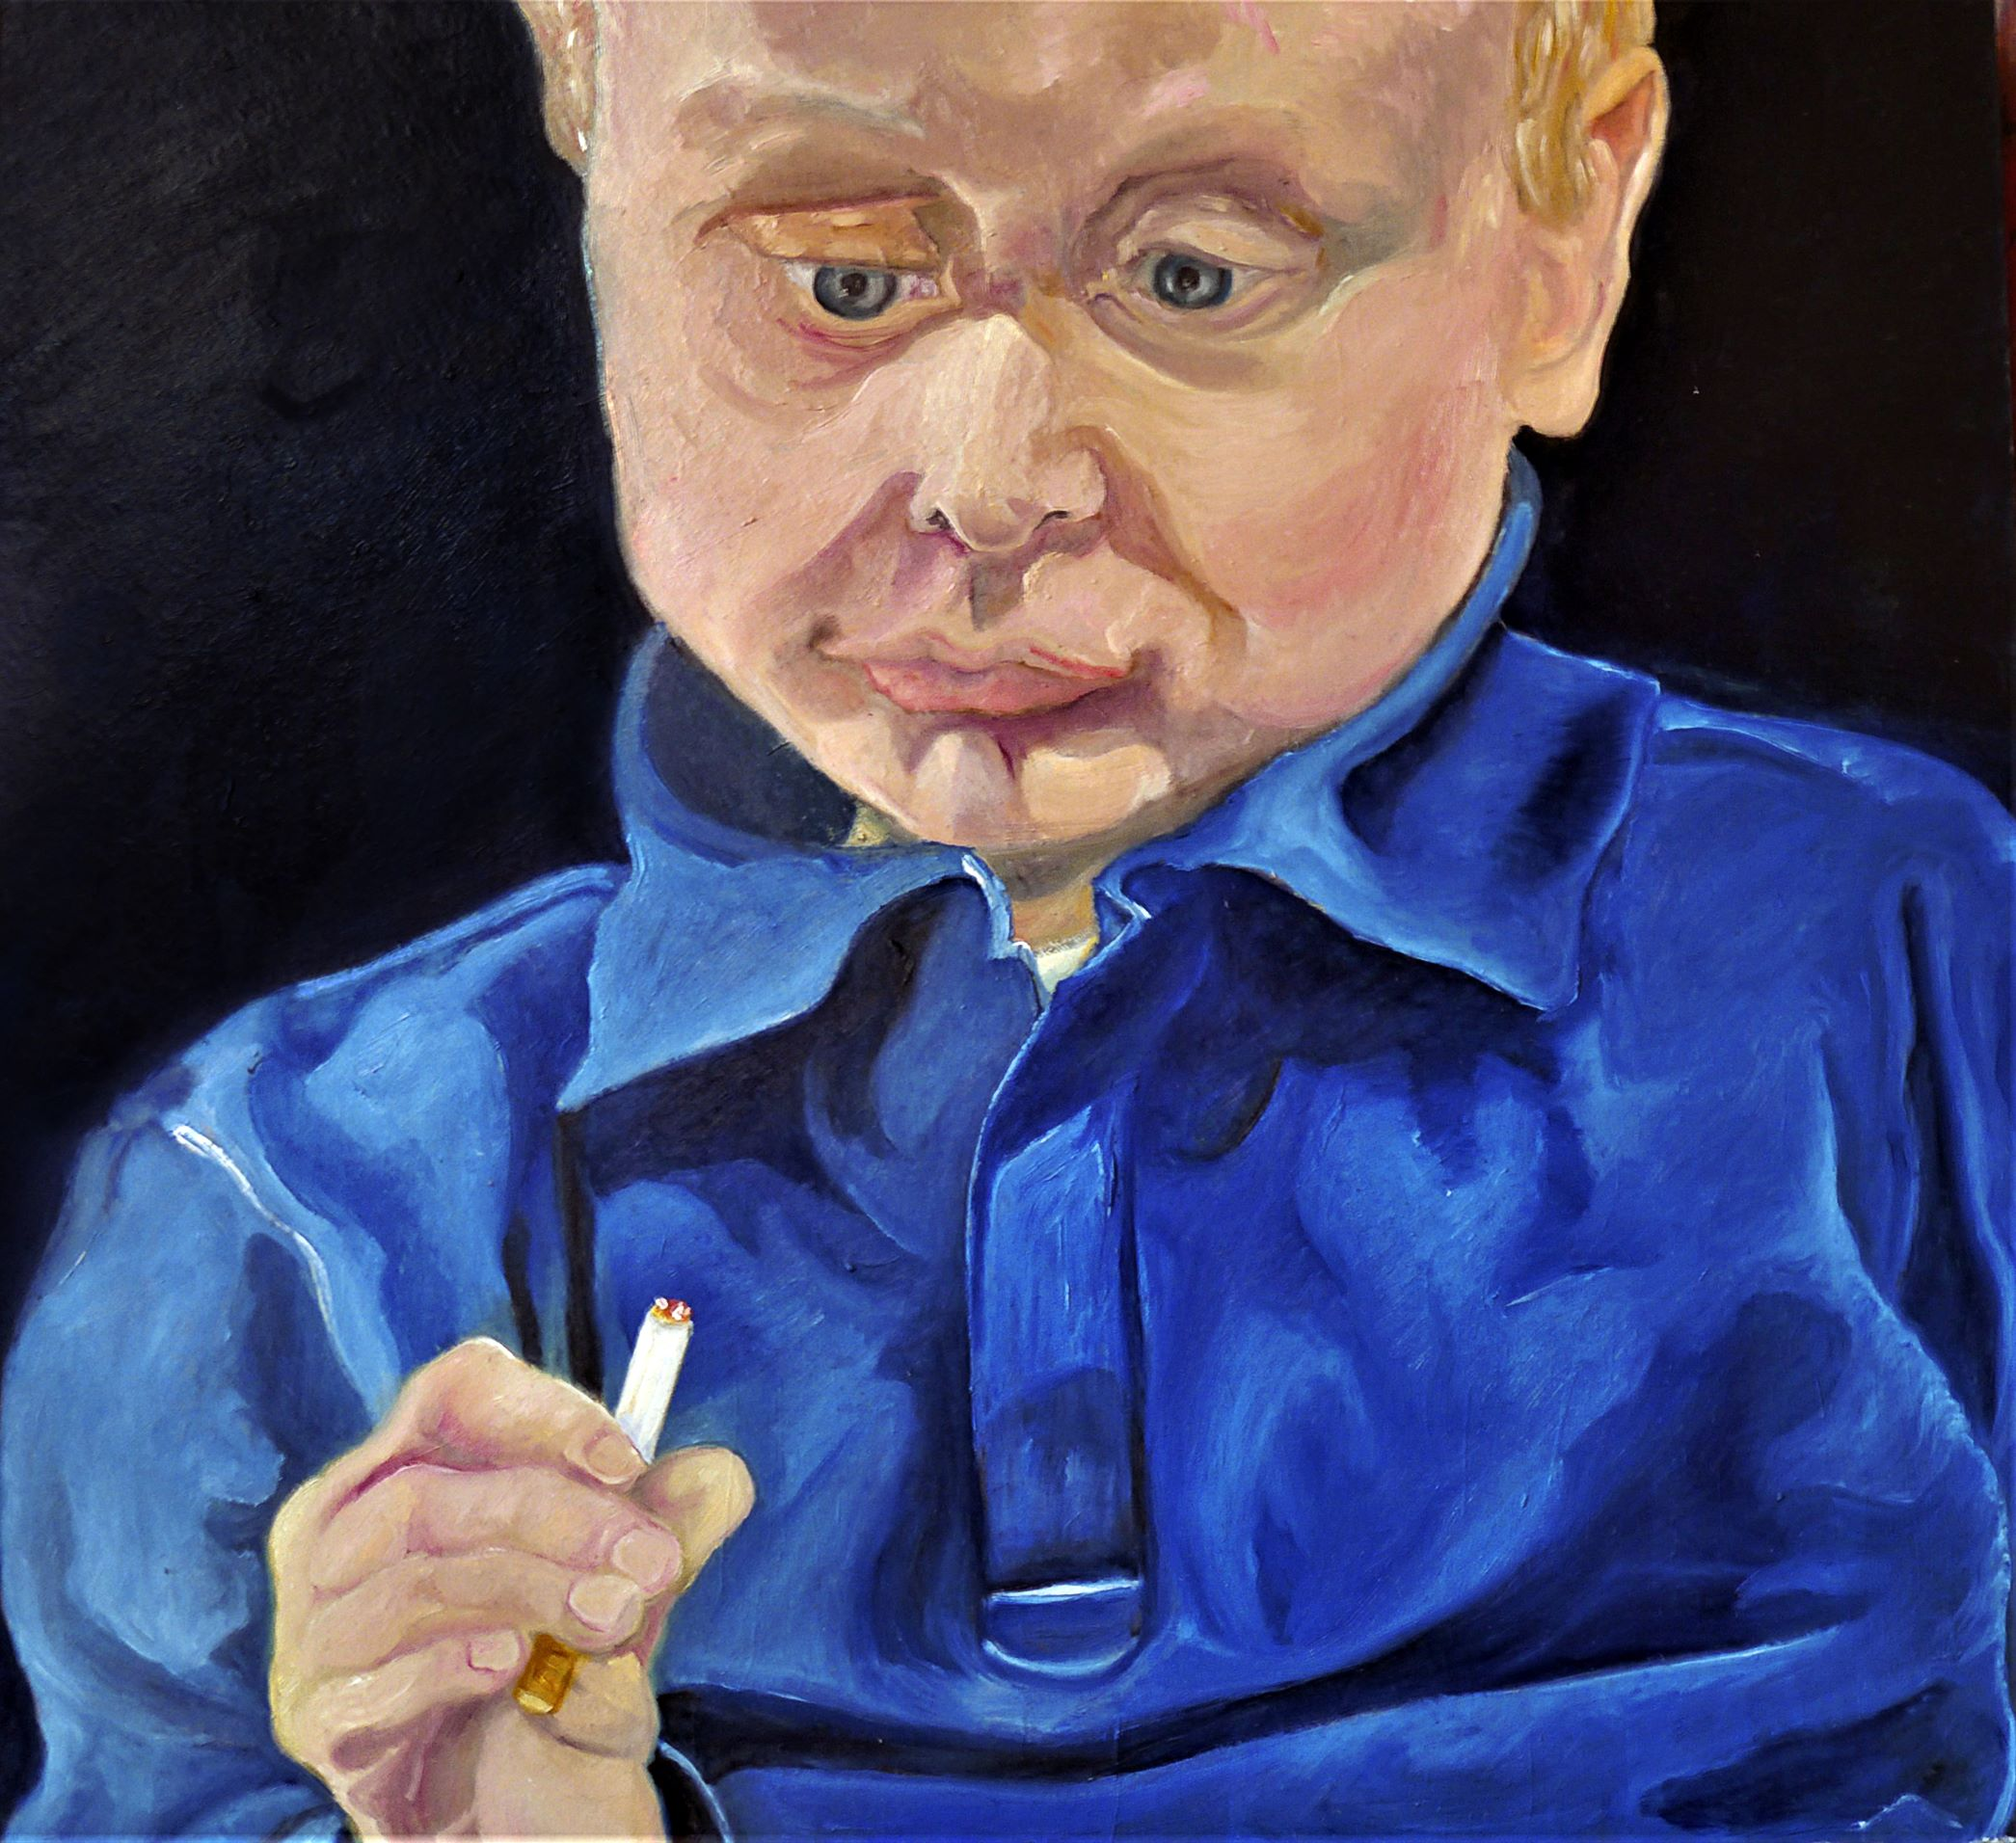 You can't teach an old dog new tricks but you can teach a baby to smoke sticks